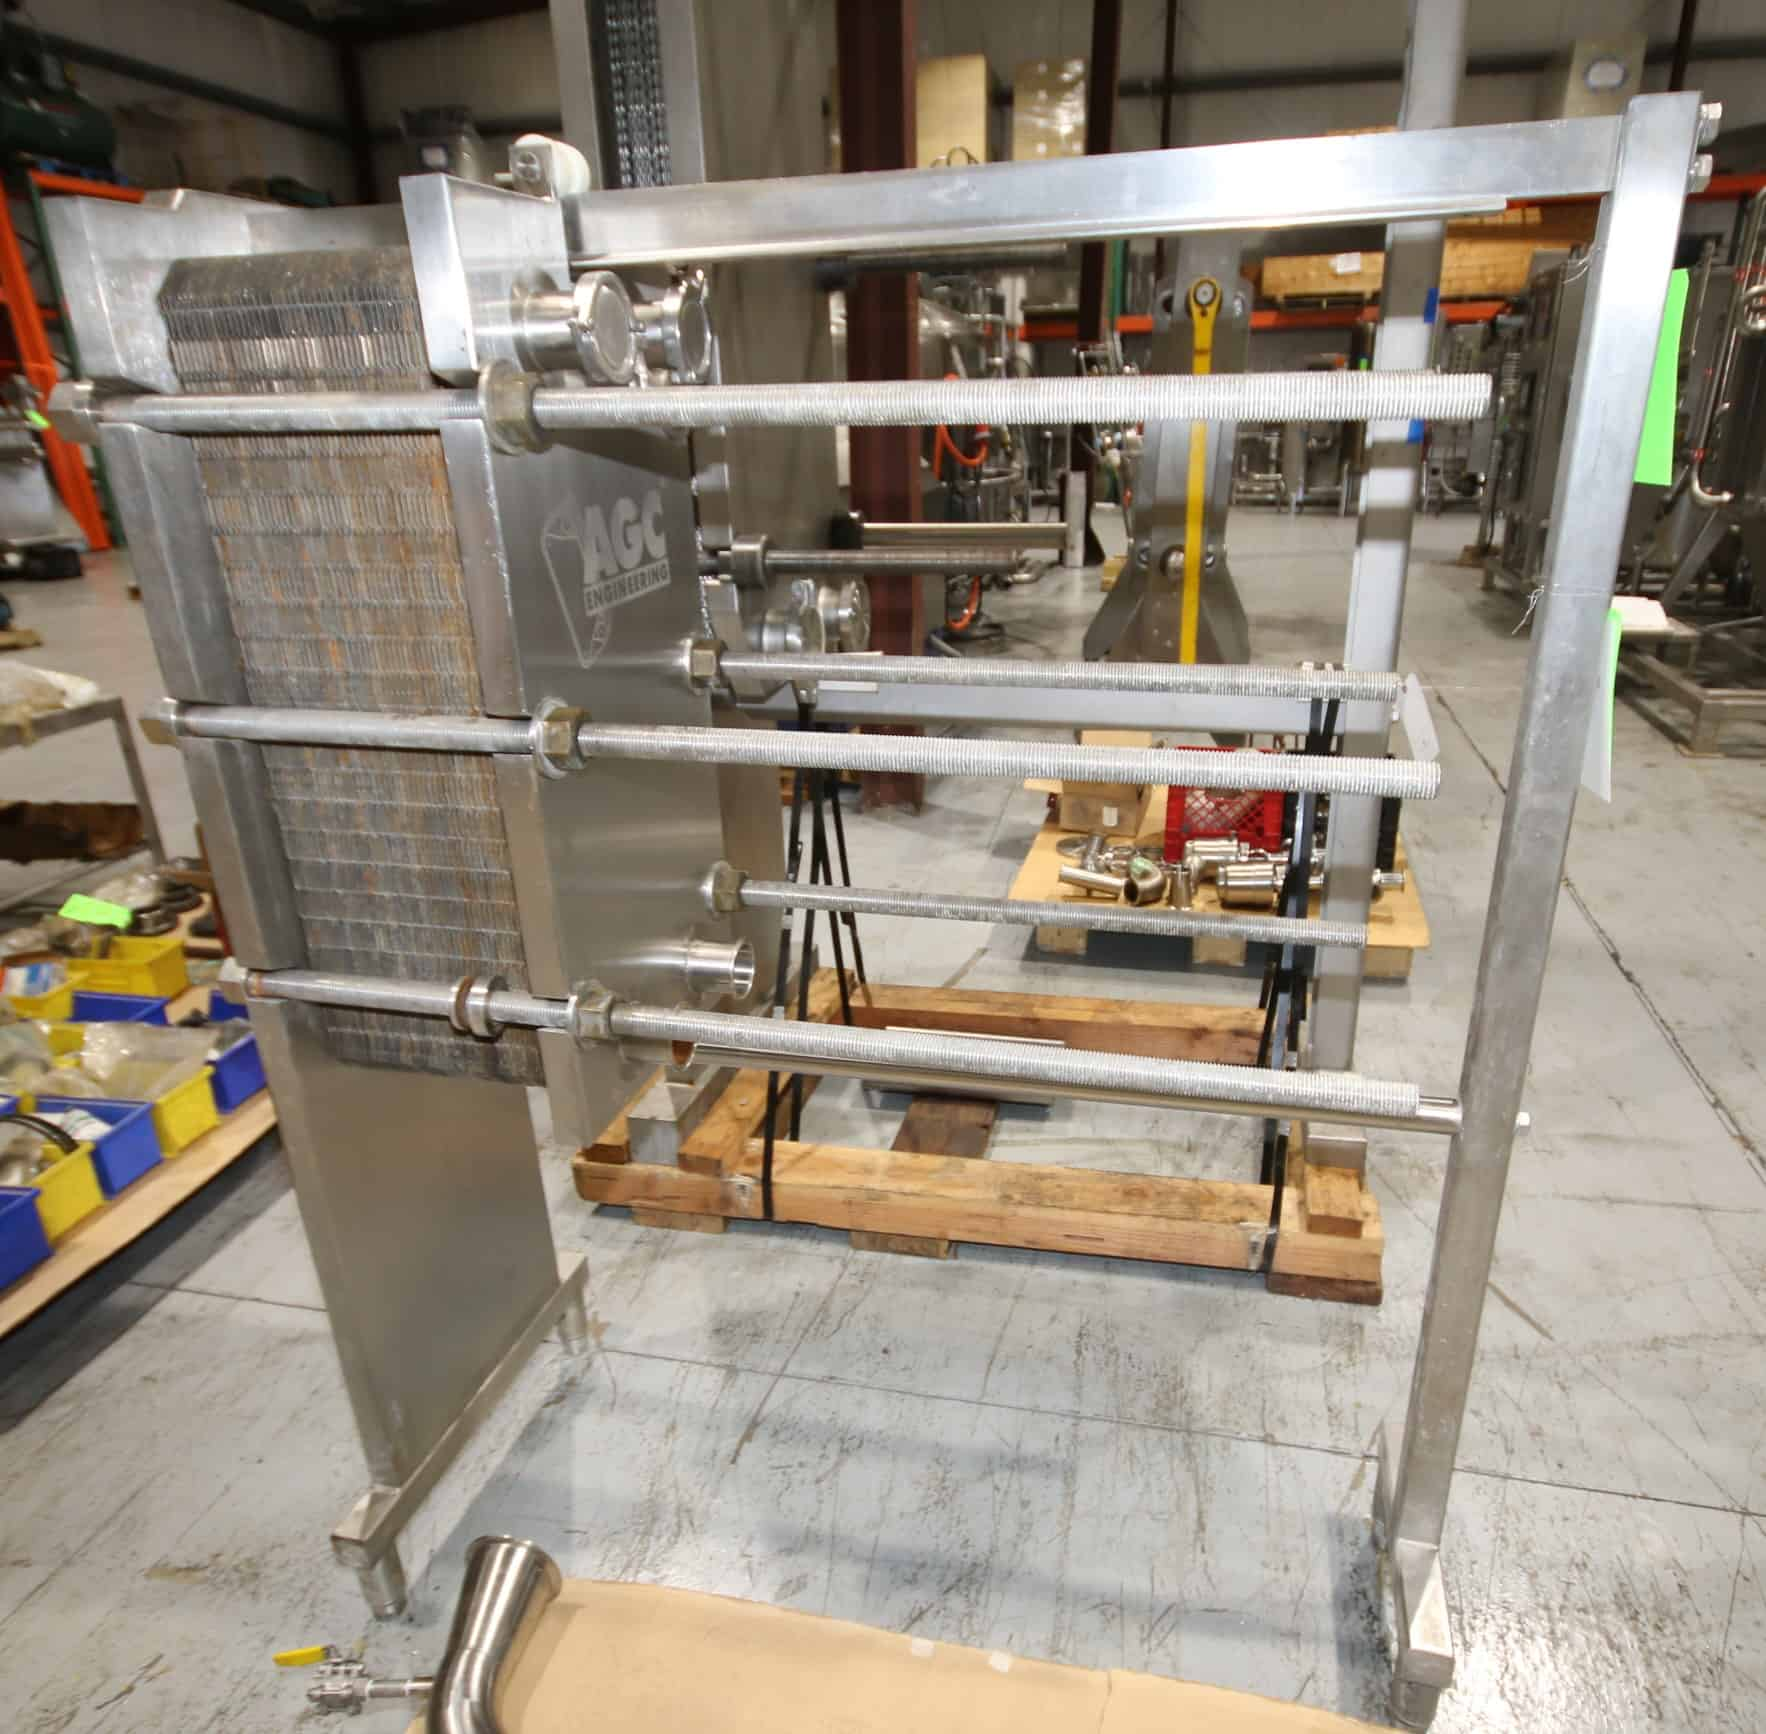 2005 AGC S/S Cream Plate Press, Model PRO2-SH, S/N 0525, Max. Temp. 250 Degree F, Max. Pressure 150 psi with (97) Plates includes Pallet of S/S Pipe Connectors, Temperature Sensors and Gauges